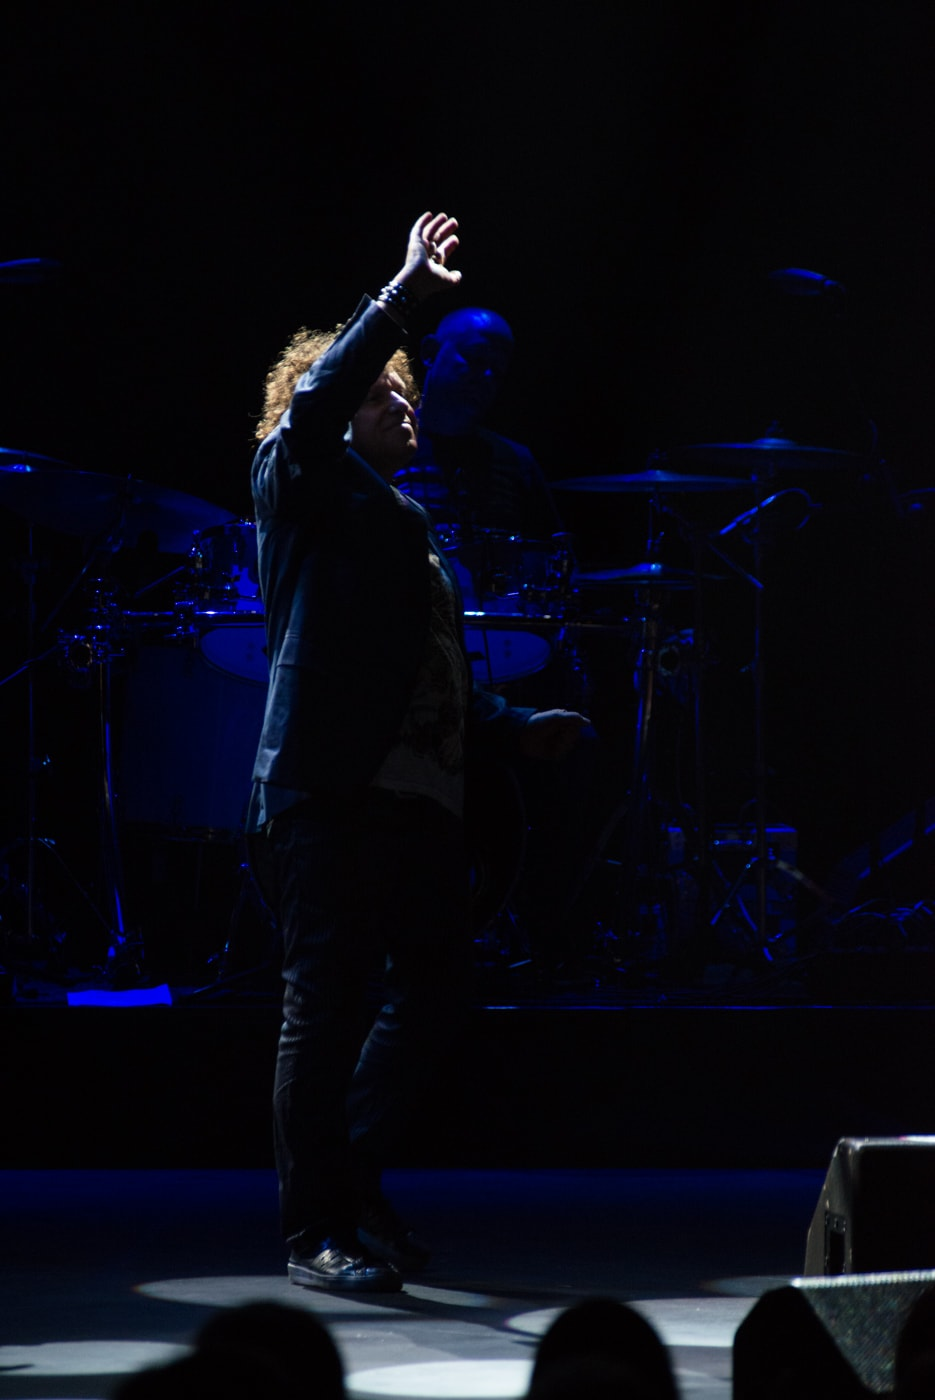 Leo Sayer at Bord Gais Energy Theatre by Sean Smyth (16-10-15) (57 of 129)